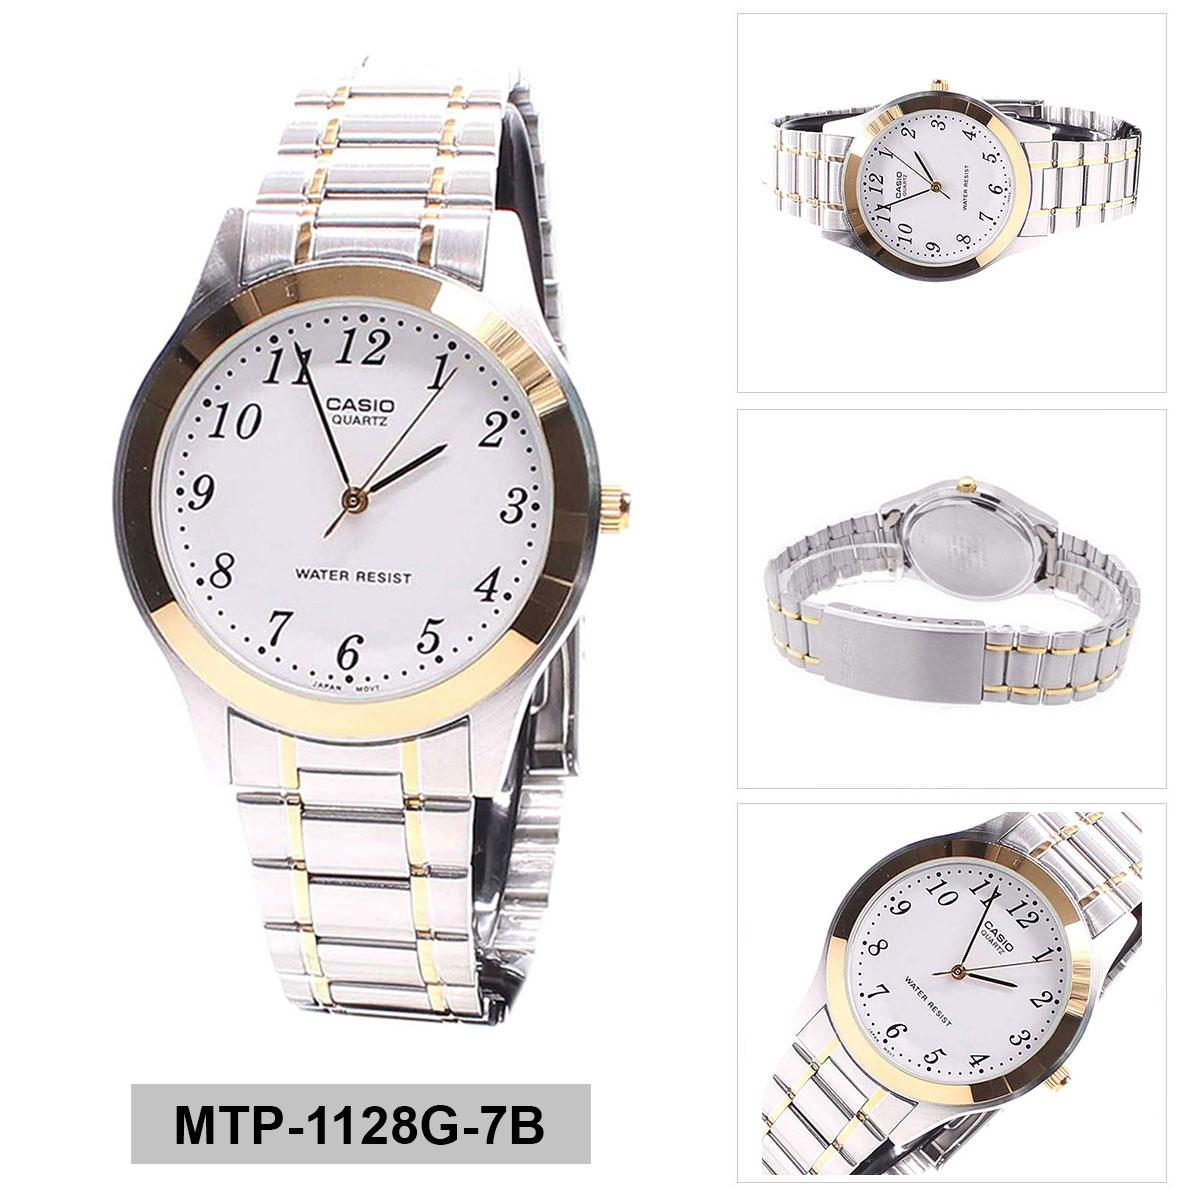 Low Price Casio Watch Standard Multicolored Stainless Steel Case Two Tone Stainless Steel Bracelet Mens Mtp 1128G 7B